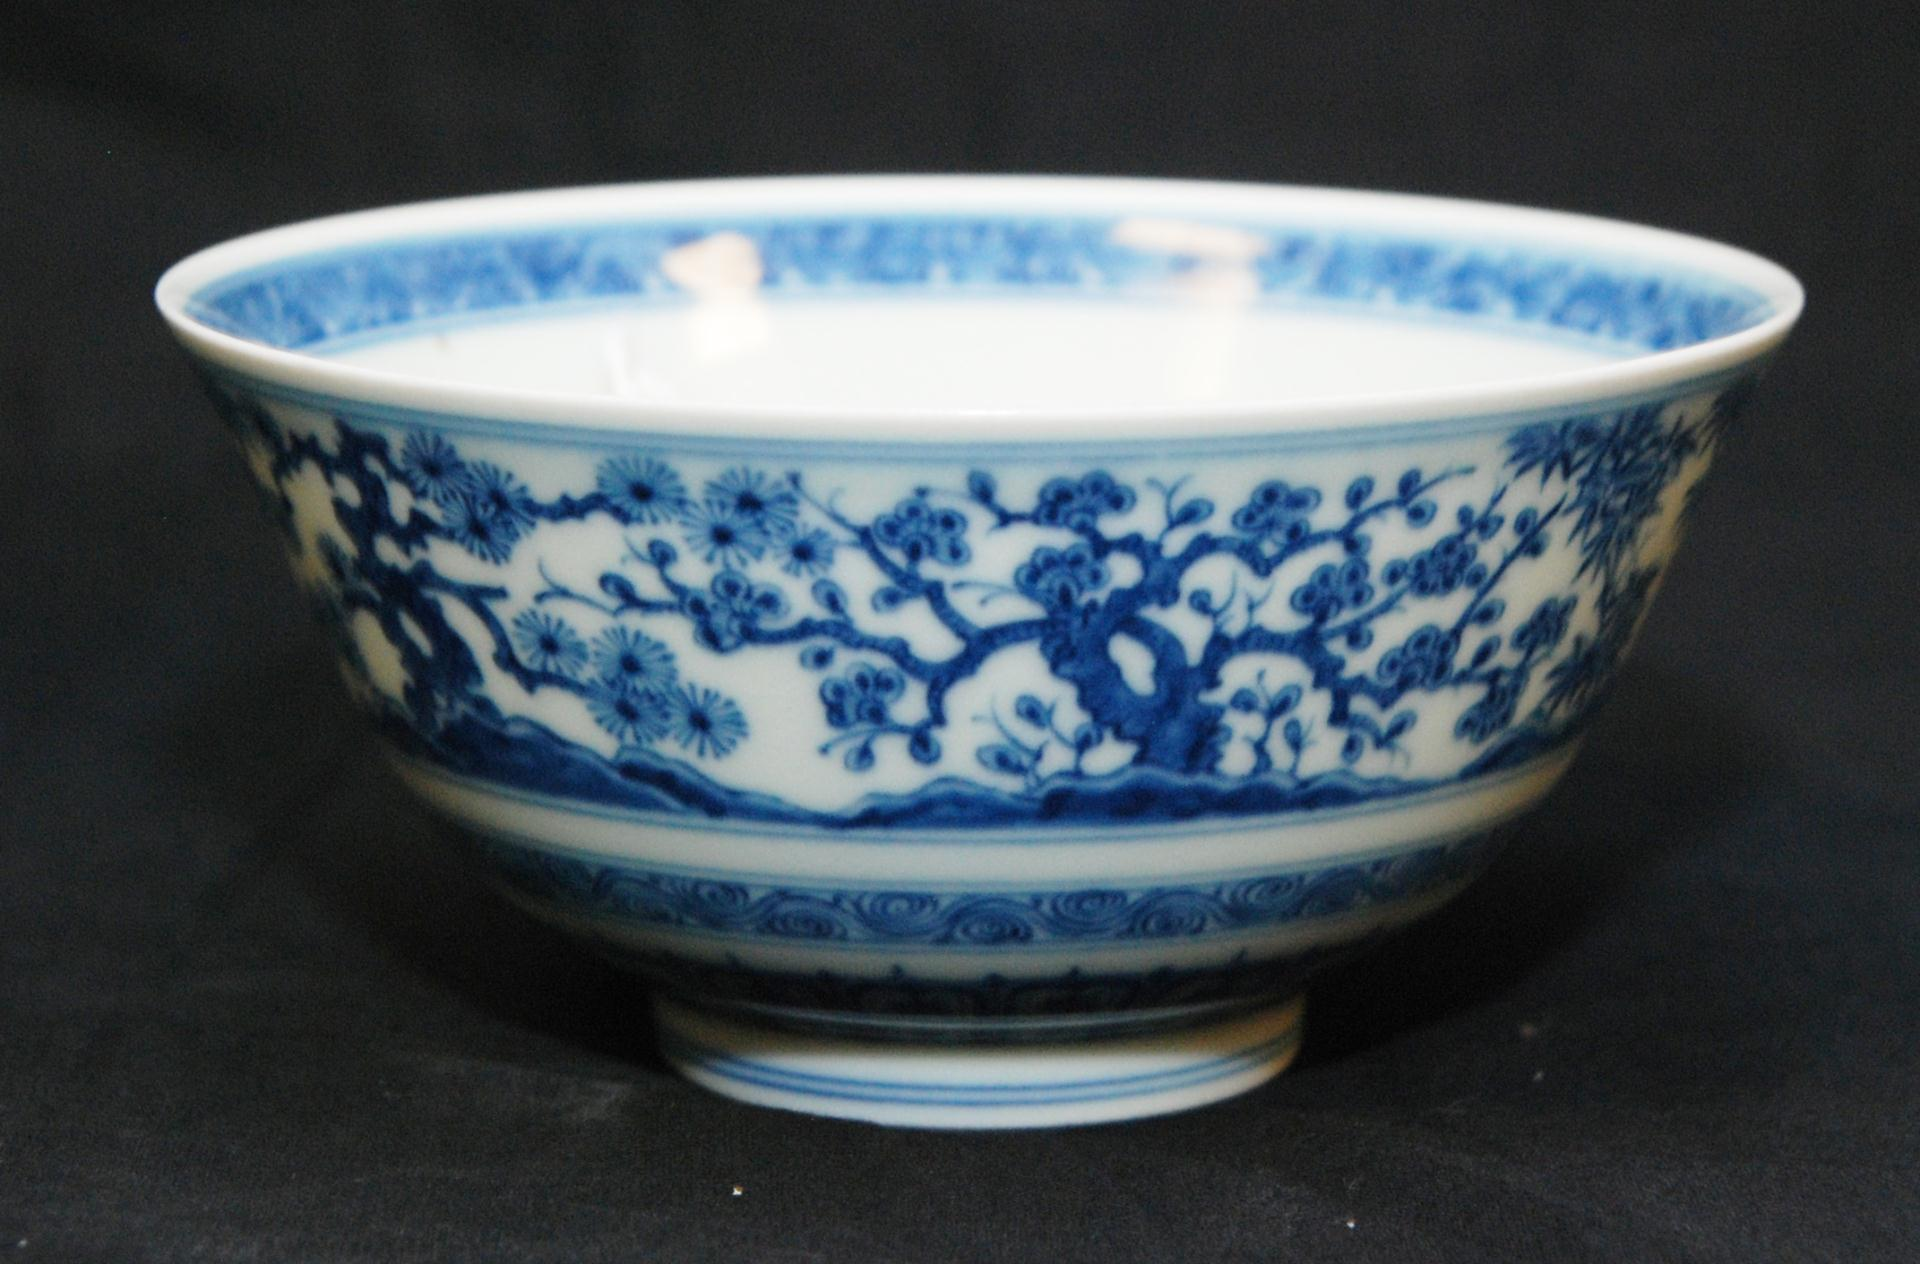 Blue and white Ming Bowl with garden scenes (Chenghua reign marks)